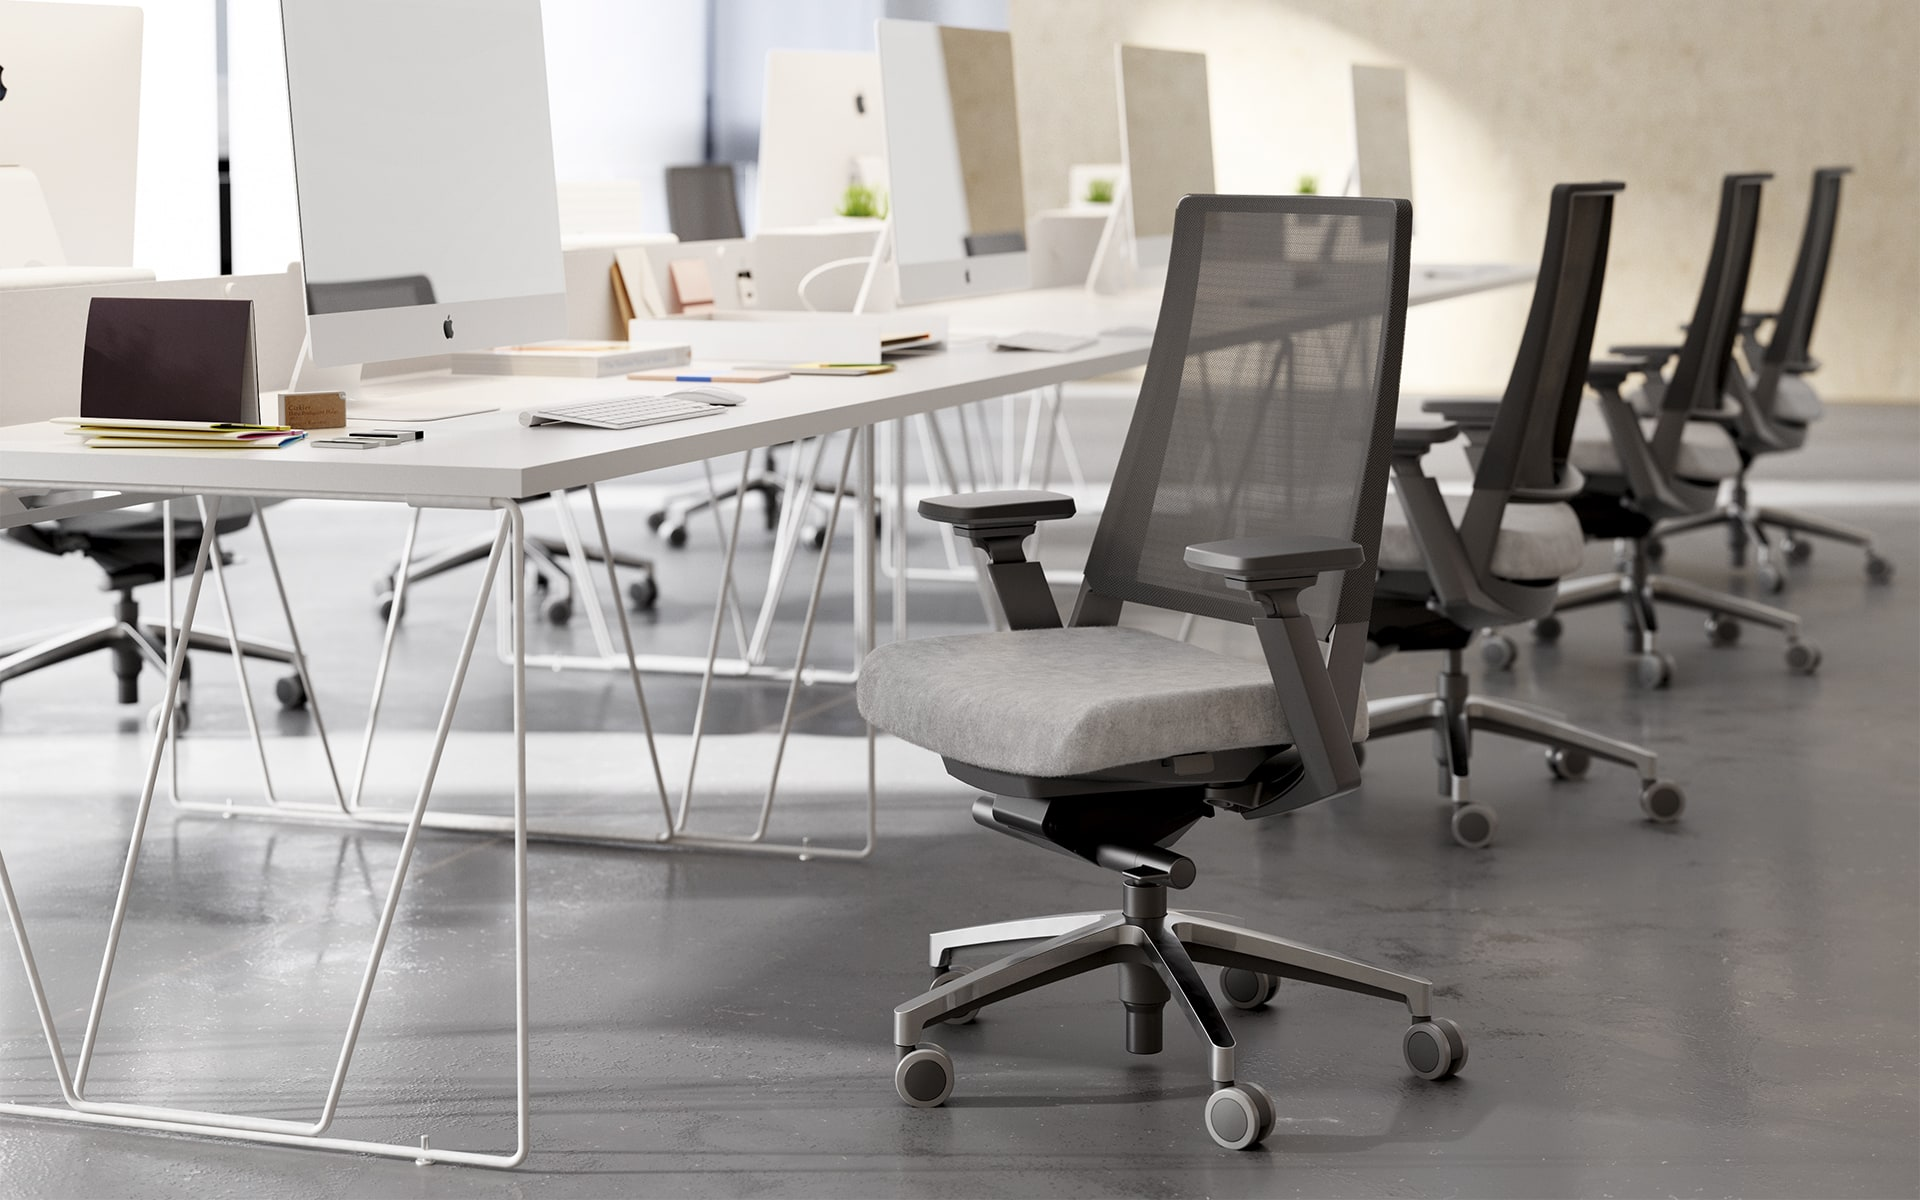 Forma5 Kineo office chairs by ITO Design in grey in bright group workspace